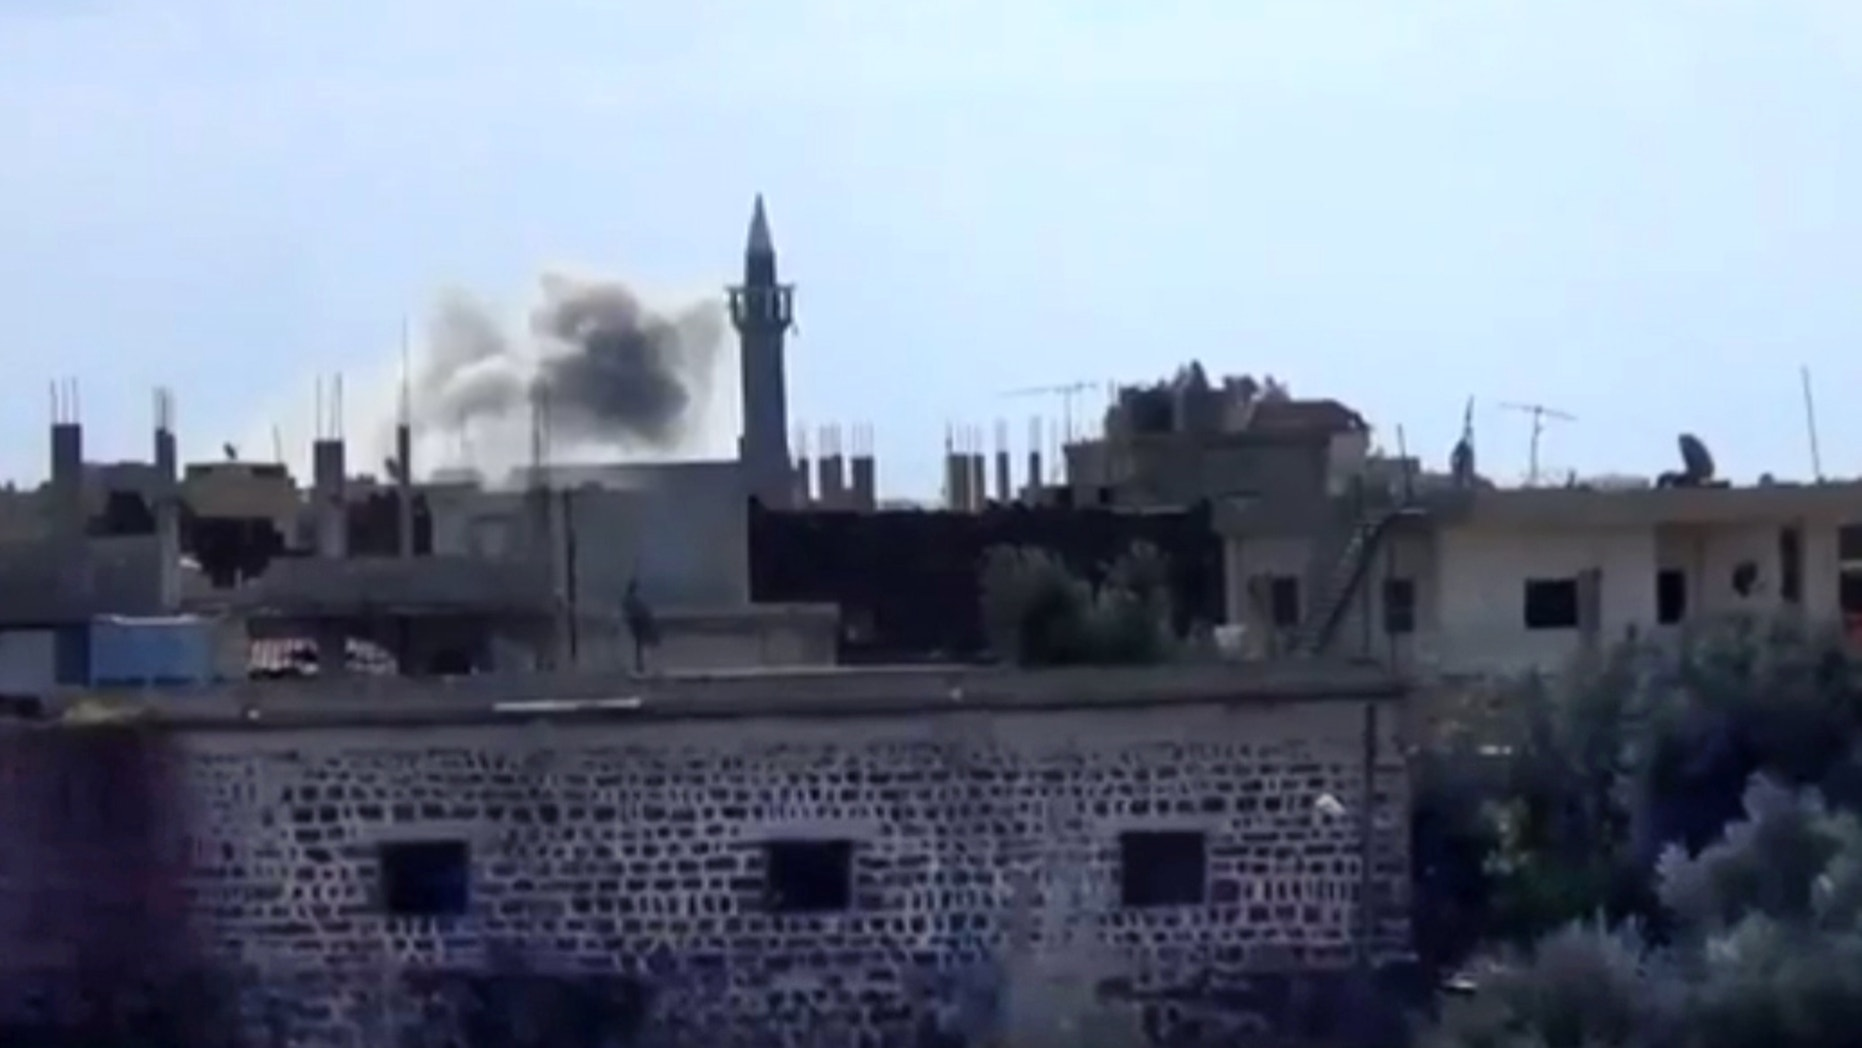 Jan. 24, 2013 - Image taken from video from the Shaam News Network: smoke rises from buildings due to heavy shelling in Daraa, Syria.